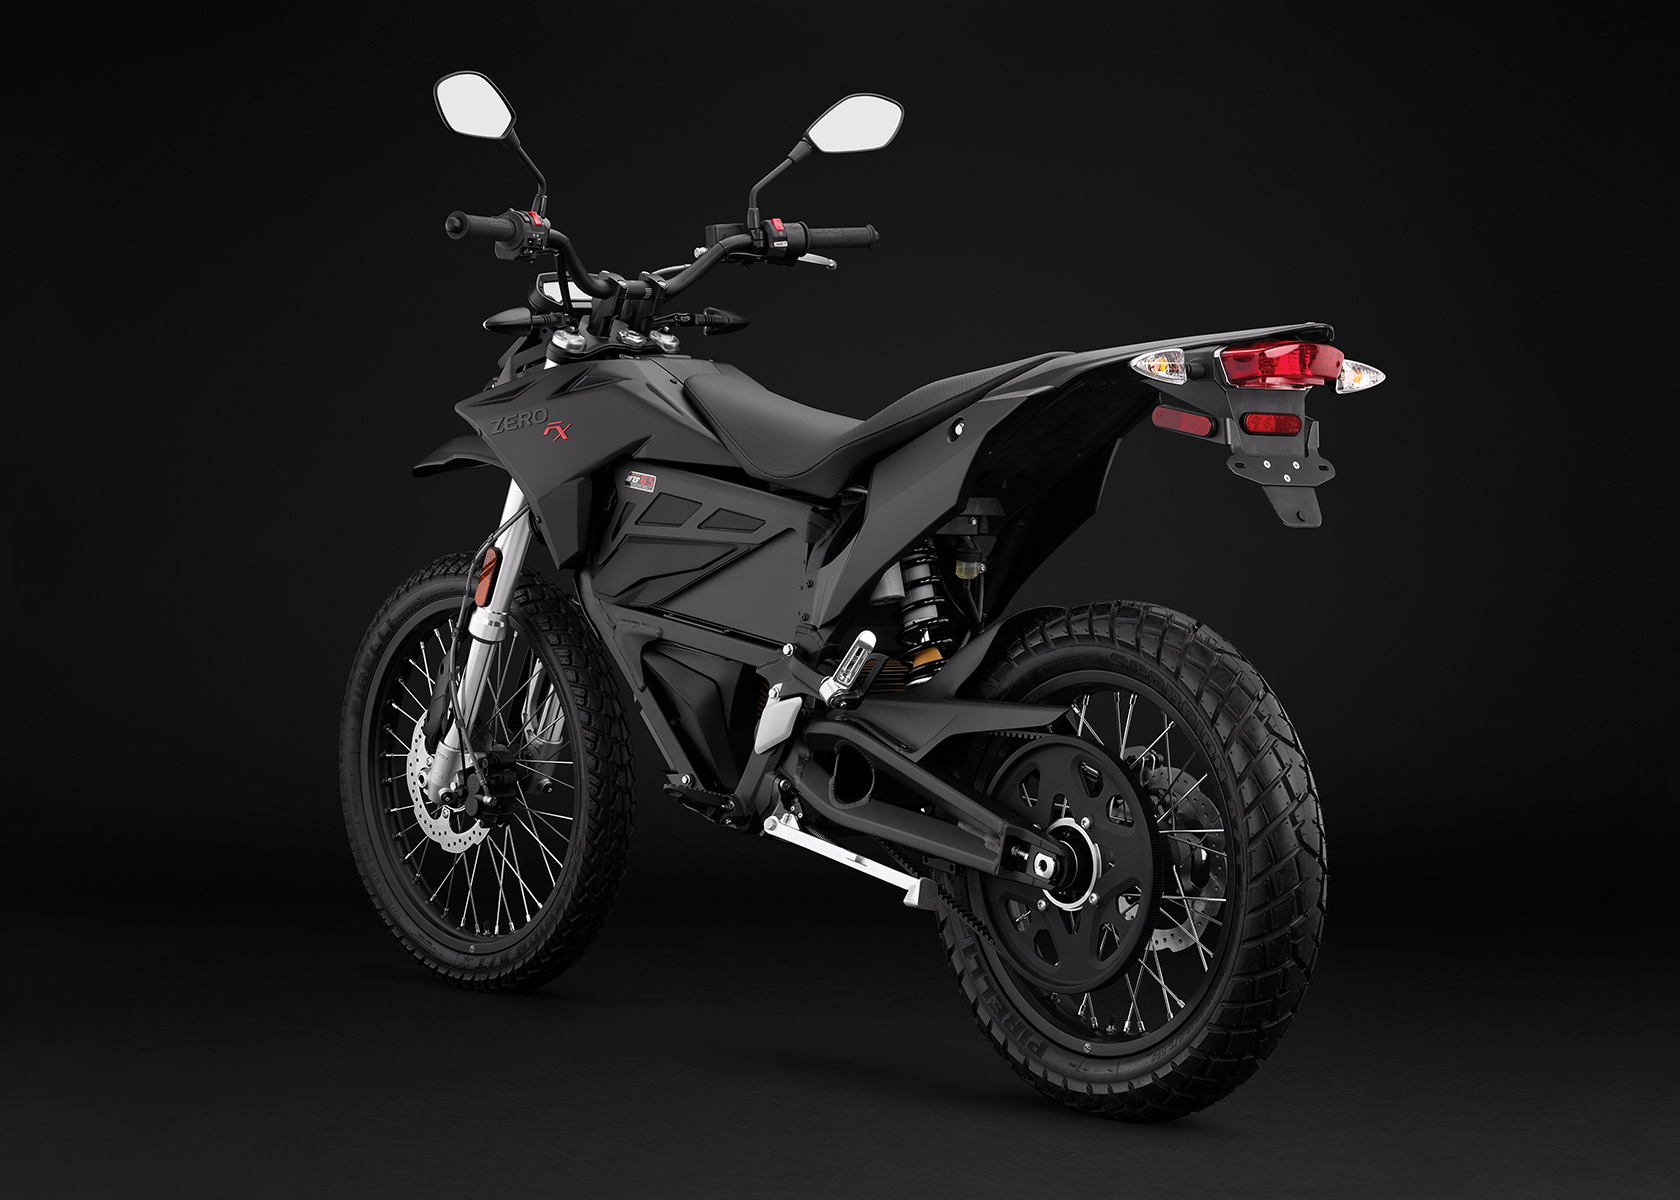 2017 Zero FX Electric Motorcycle: Black Angle Left